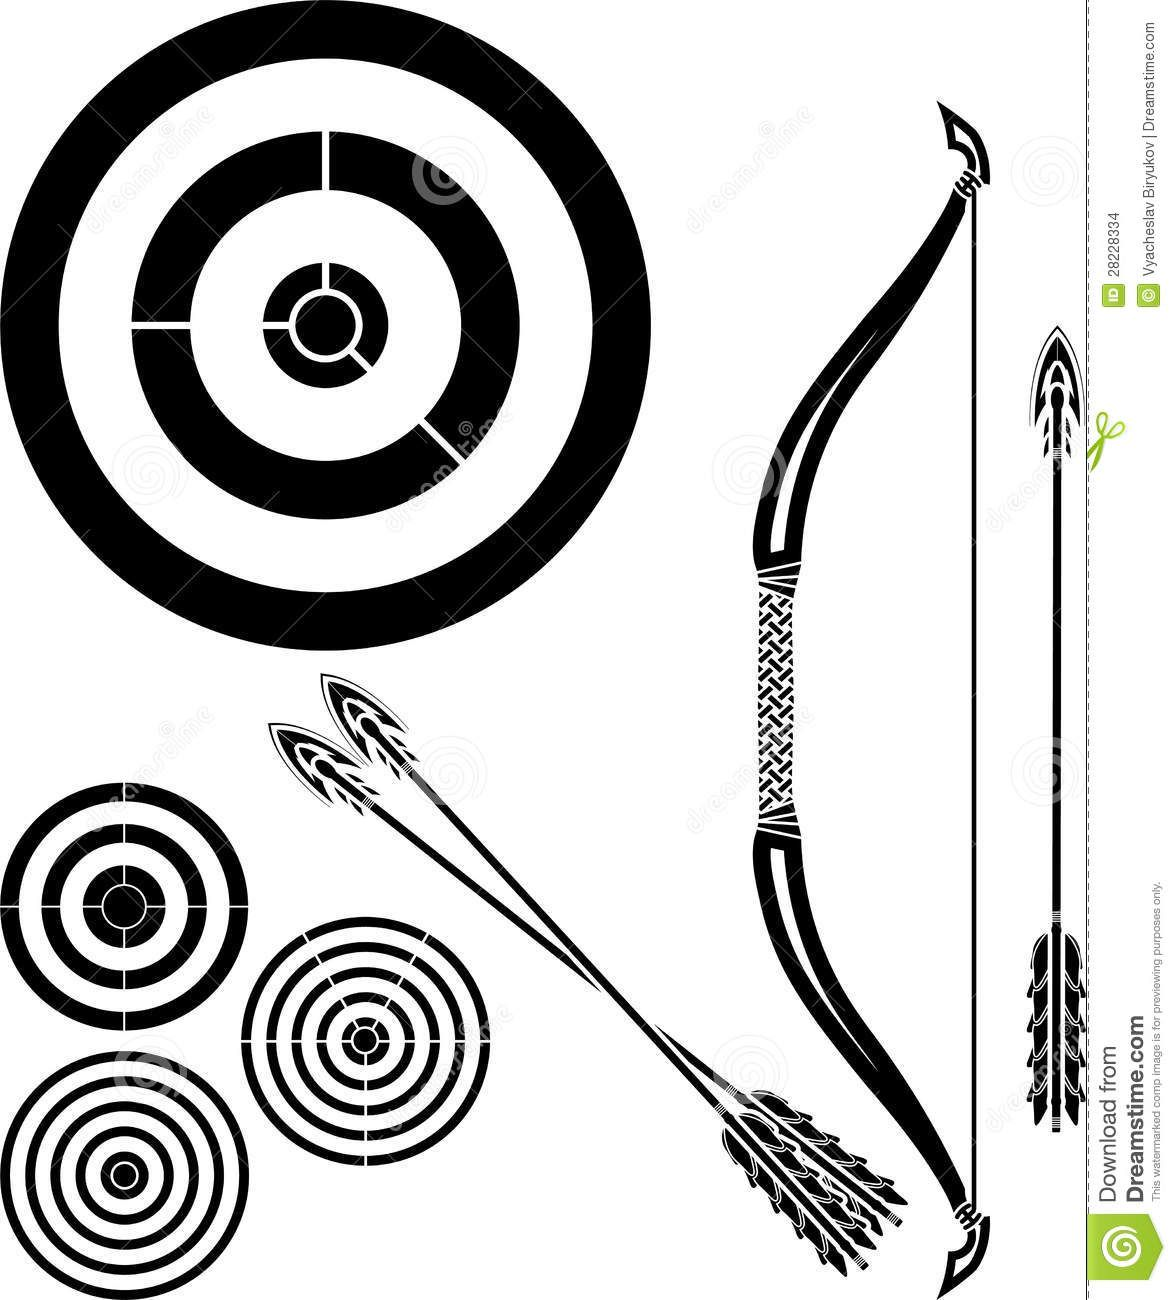 Stencil Of Bow, Arrows And Targets Download From Over 41